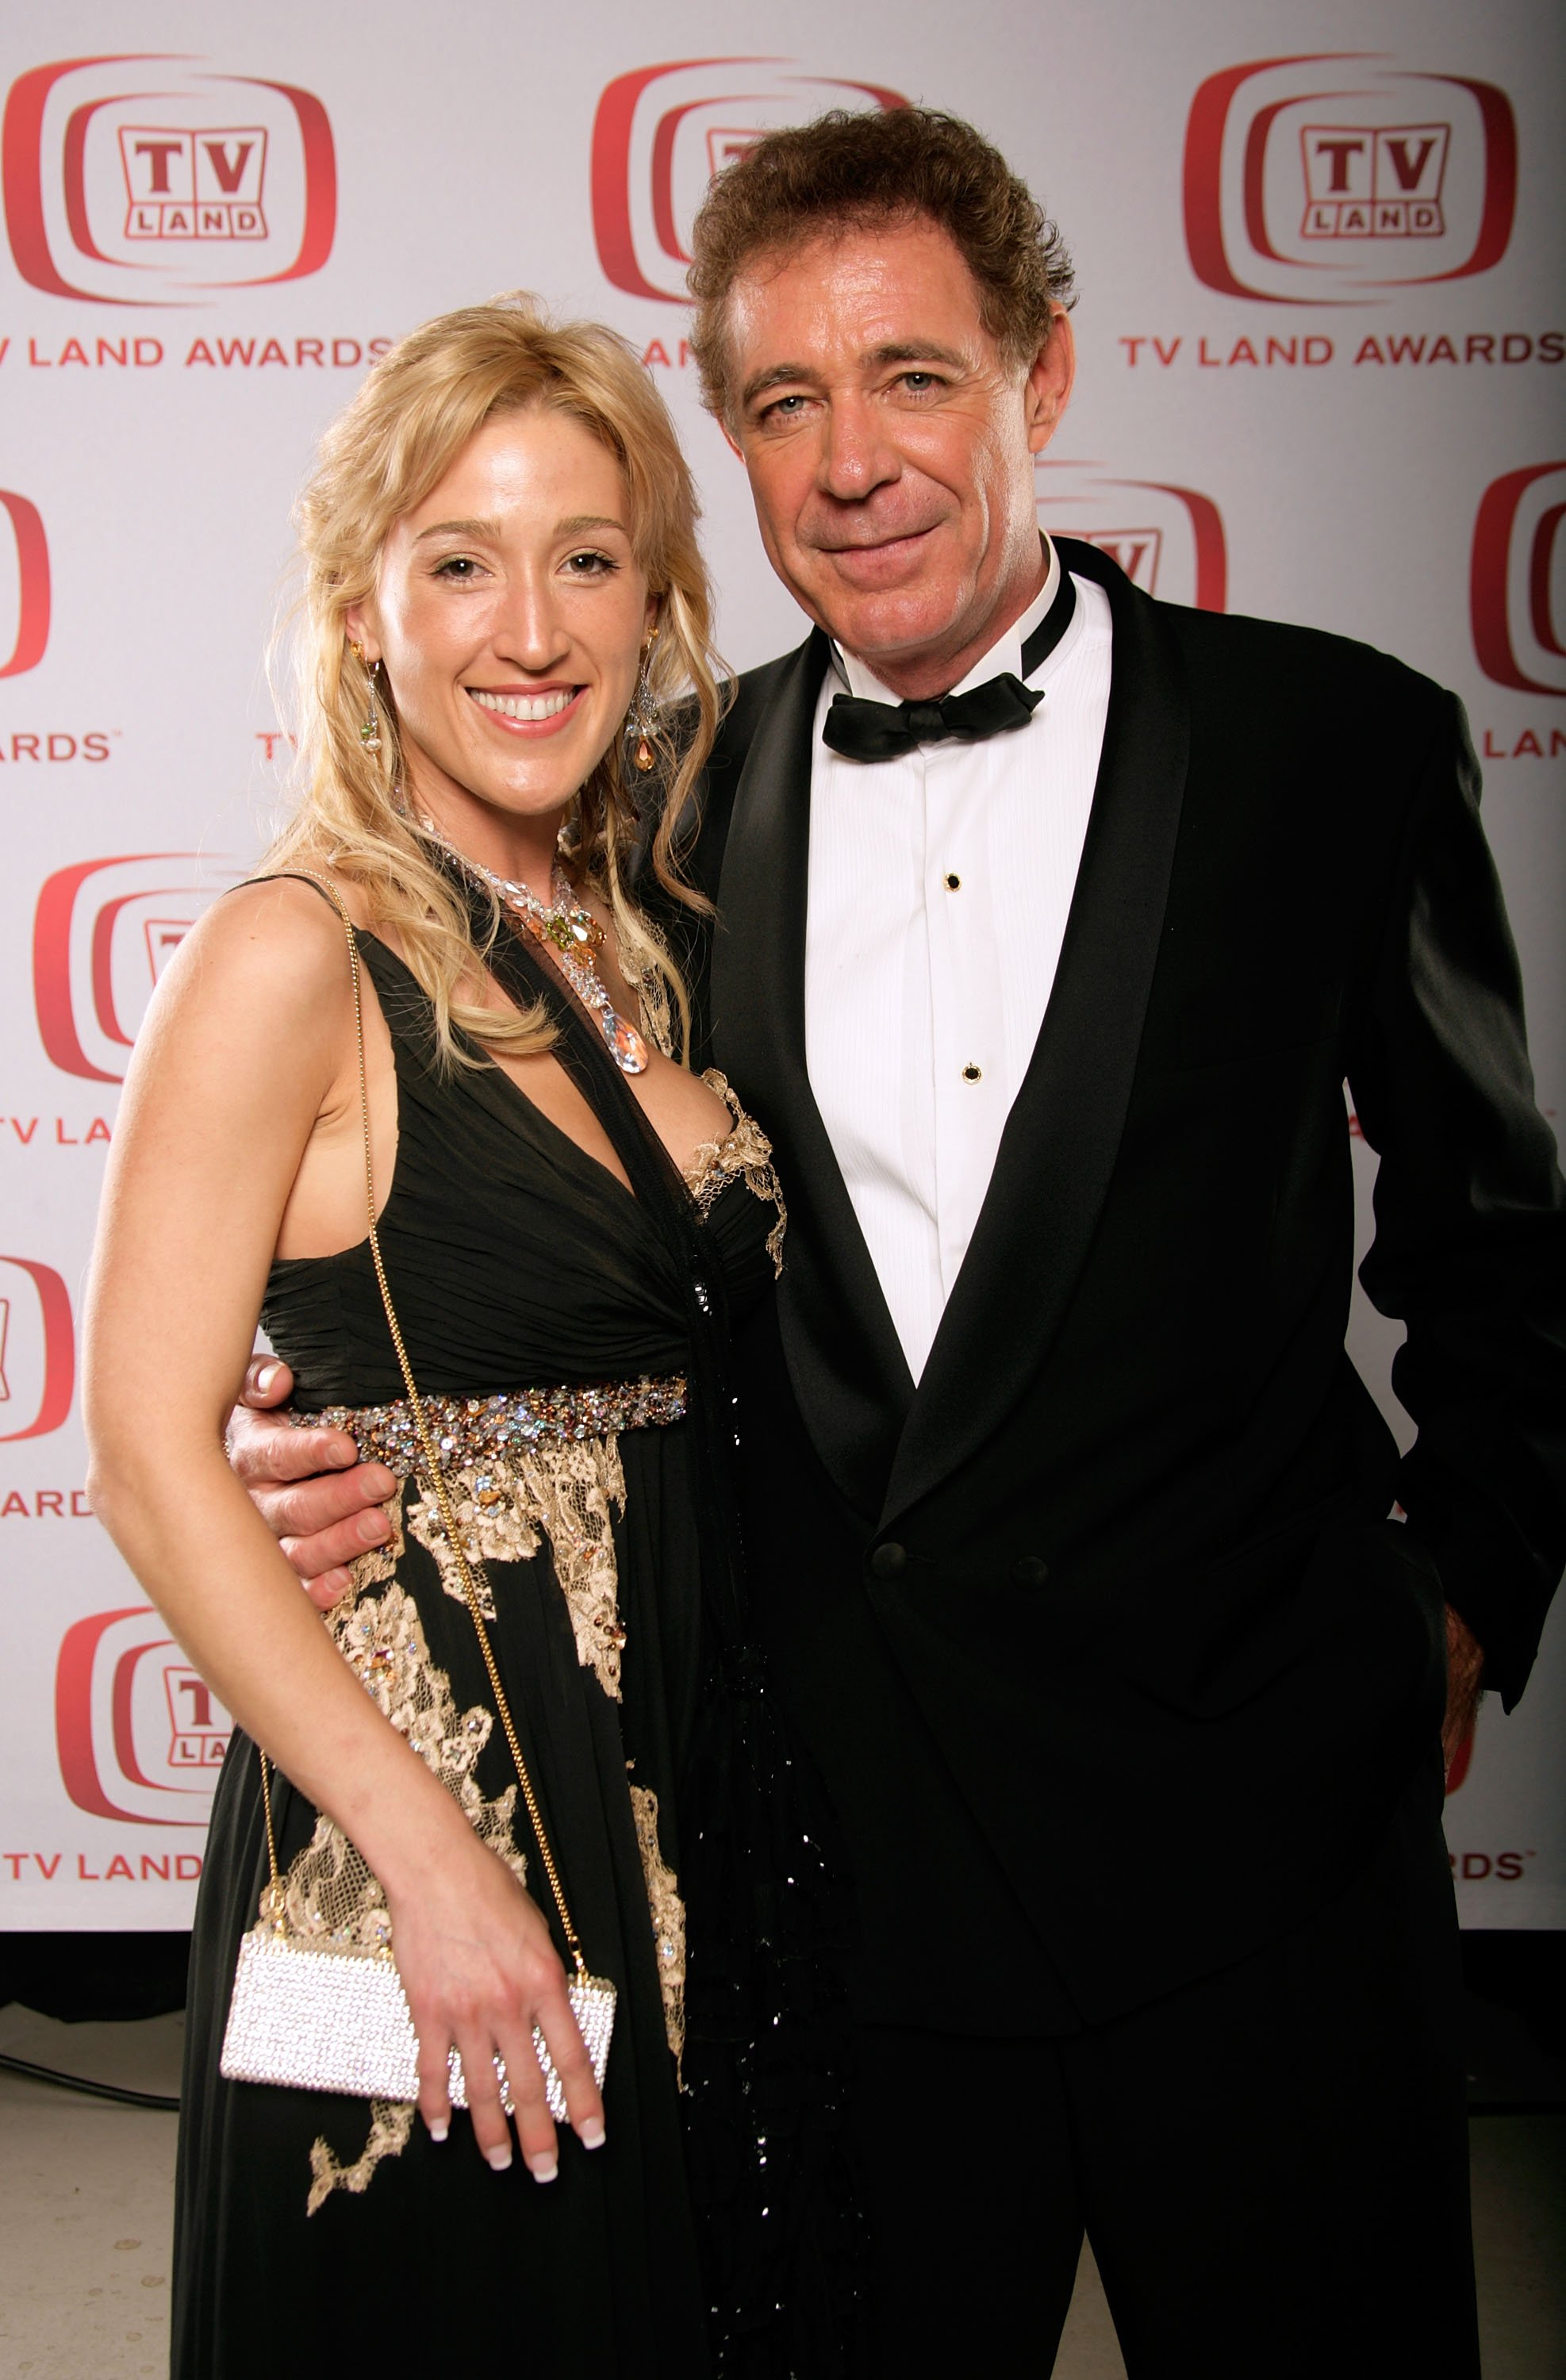 Barry Williams and Elizabeth Kennedy at Barker Hangar on June 8, 2008, in Santa Monica, California. | Photo: Getty Images